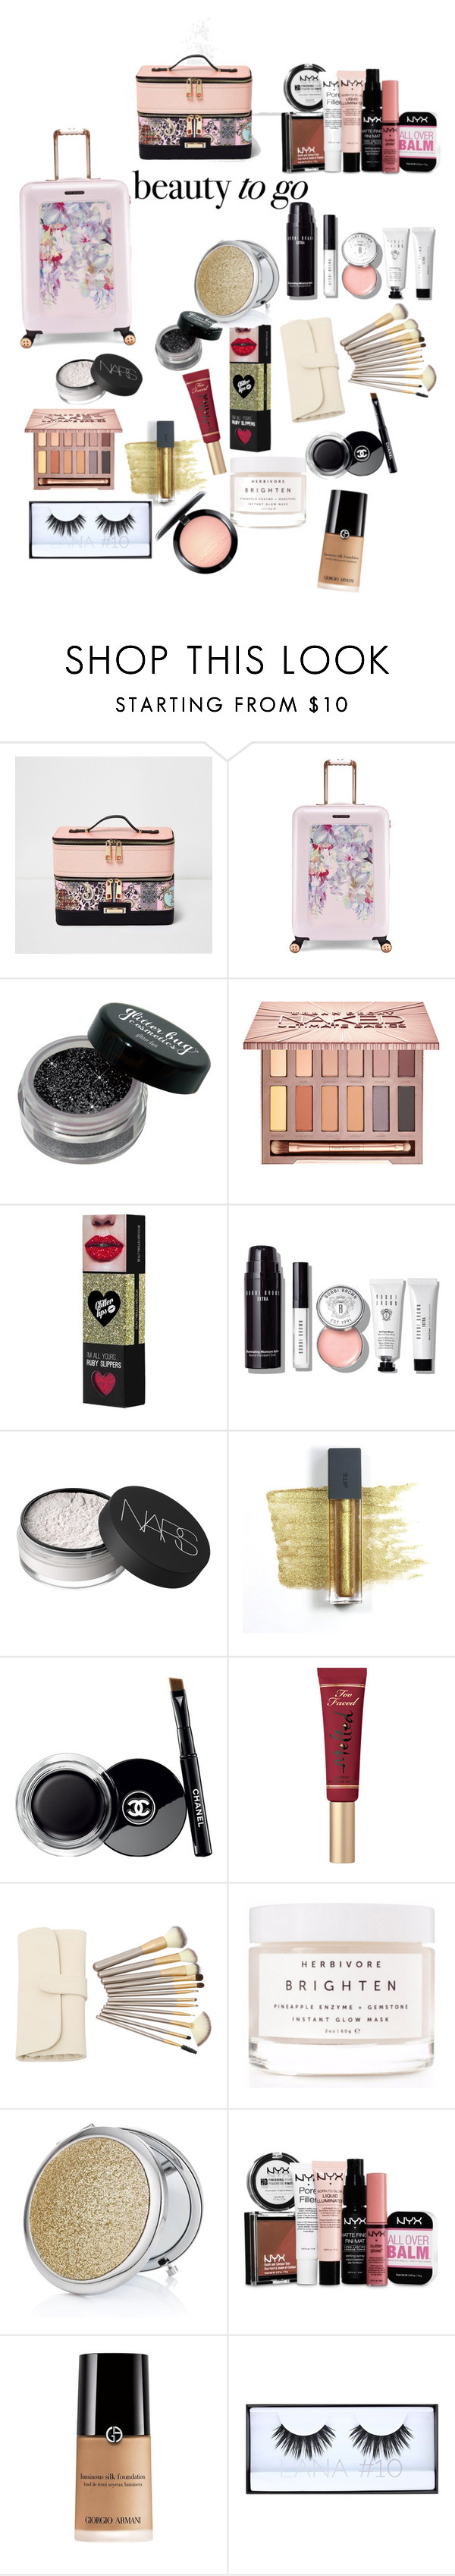 """""""Untitled #102"""" by dolcechez ❤ liked on Polyvore featuring beauty, River Island, Ted Baker, Urban Decay, Bobbi Brown Cosmetics, NARS Cosmetics, Bite, Chanel, Too Faced Cosmetics and Herbivore"""